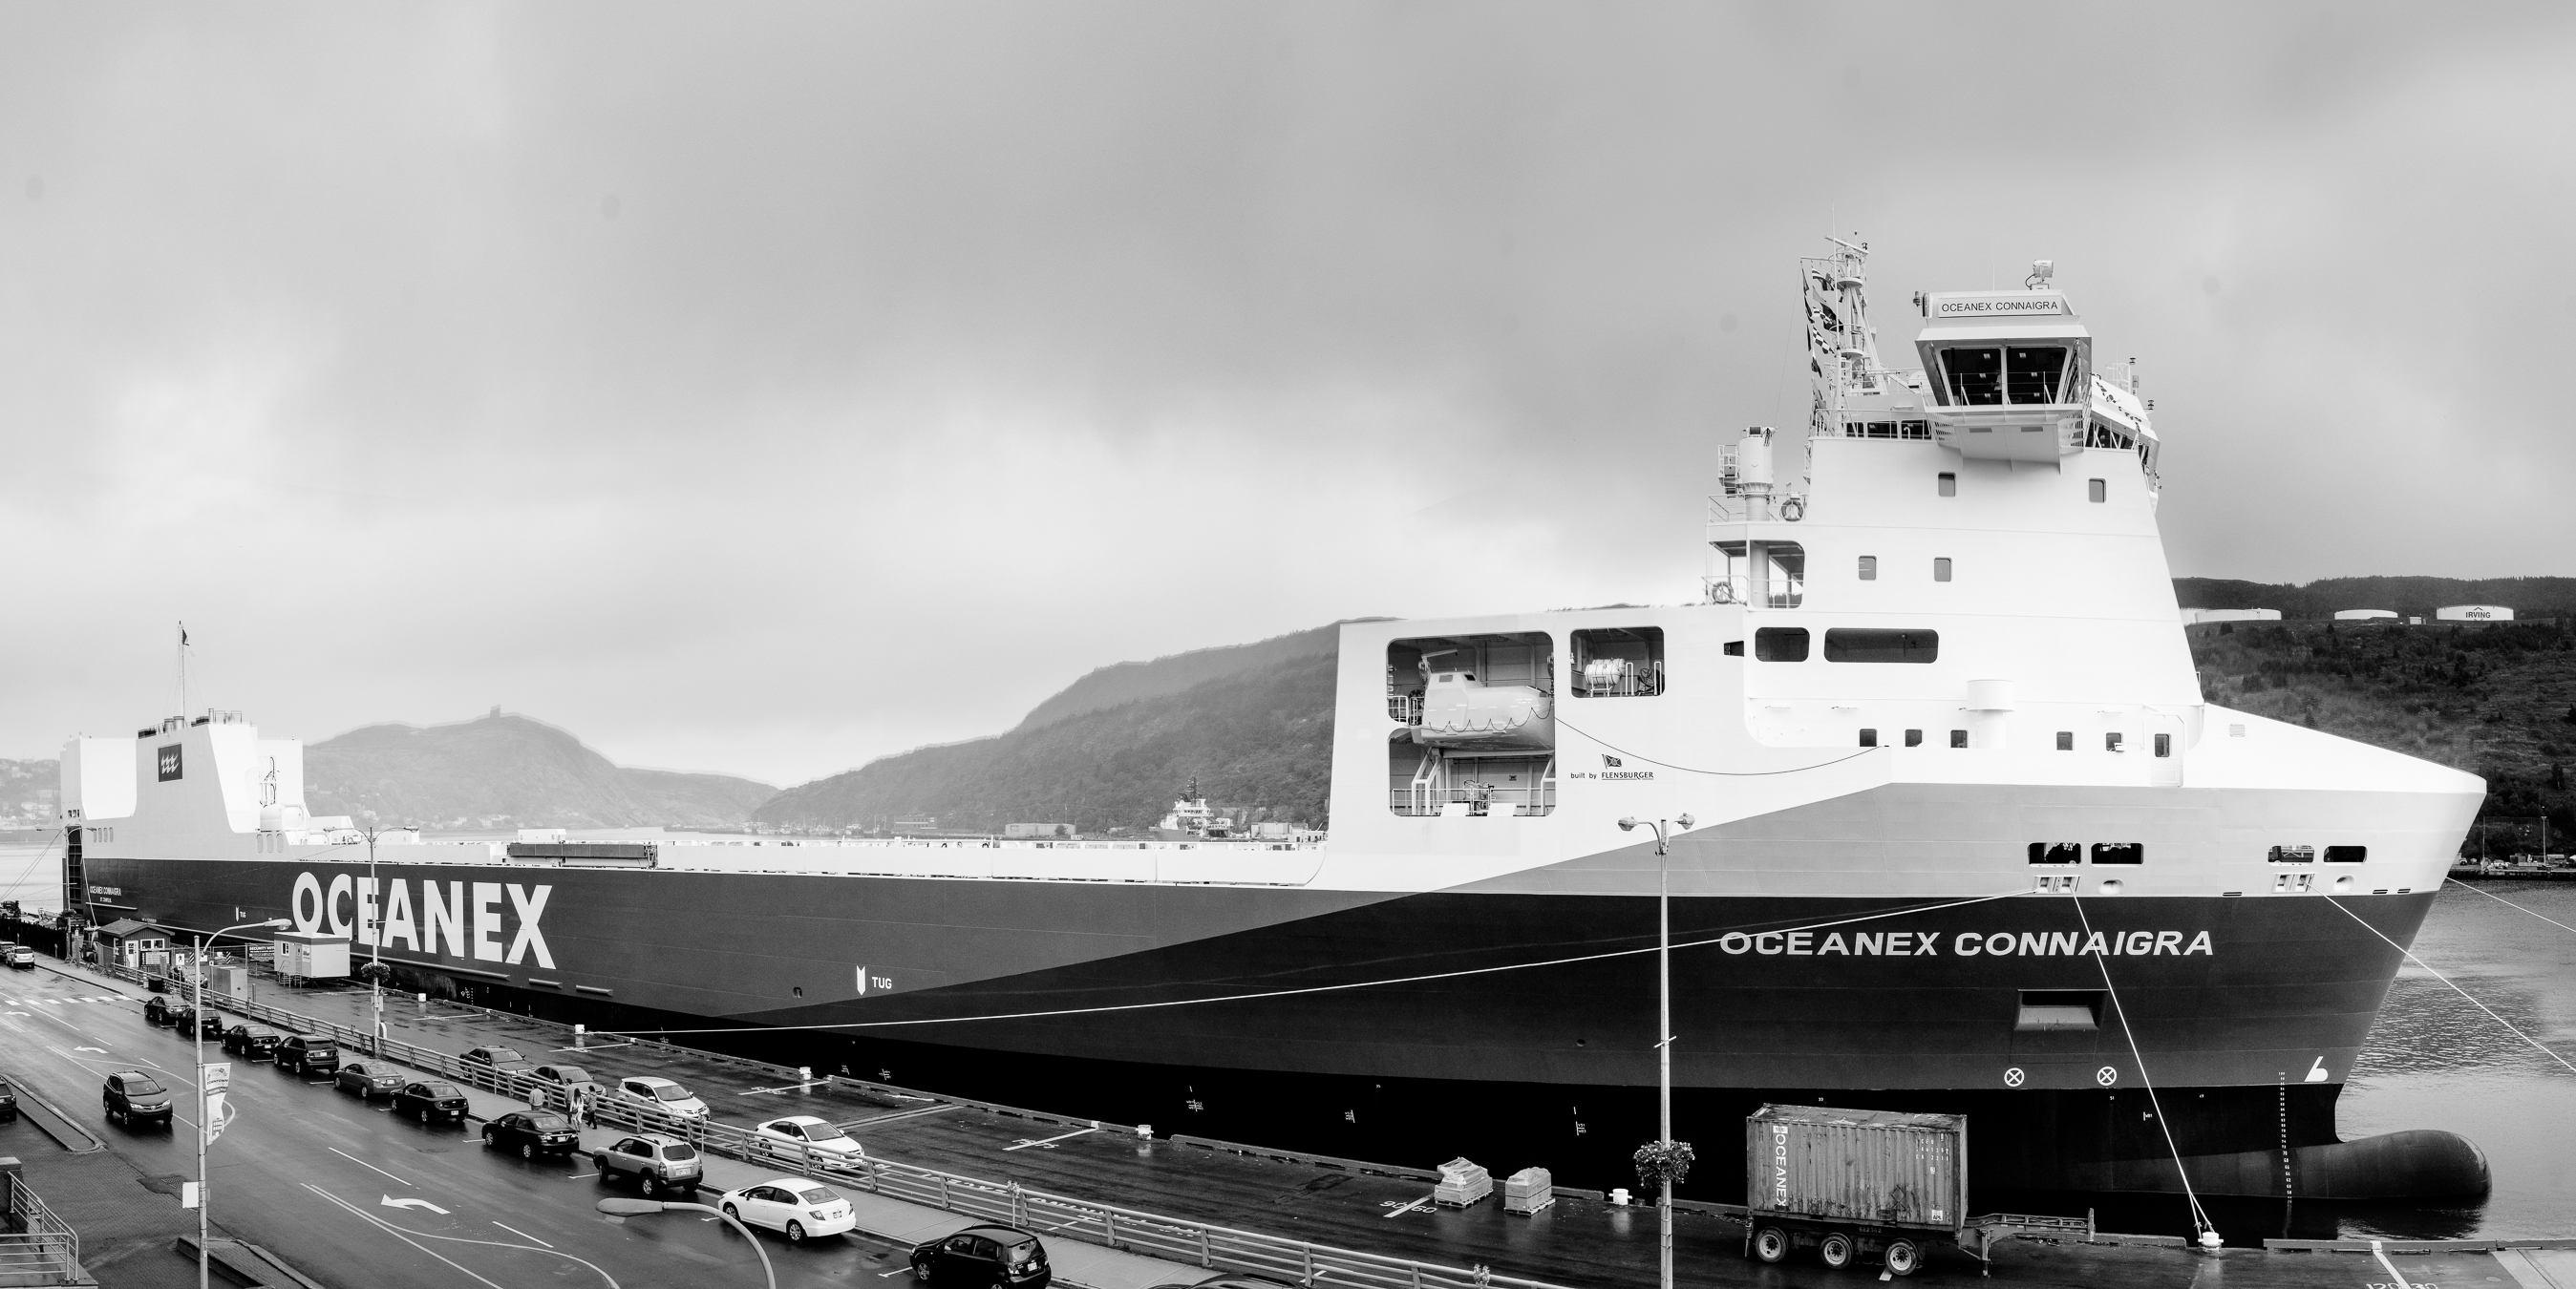 The Oceanex Connaigra -  Canada's Largest containership in our fair port  - Waterfront